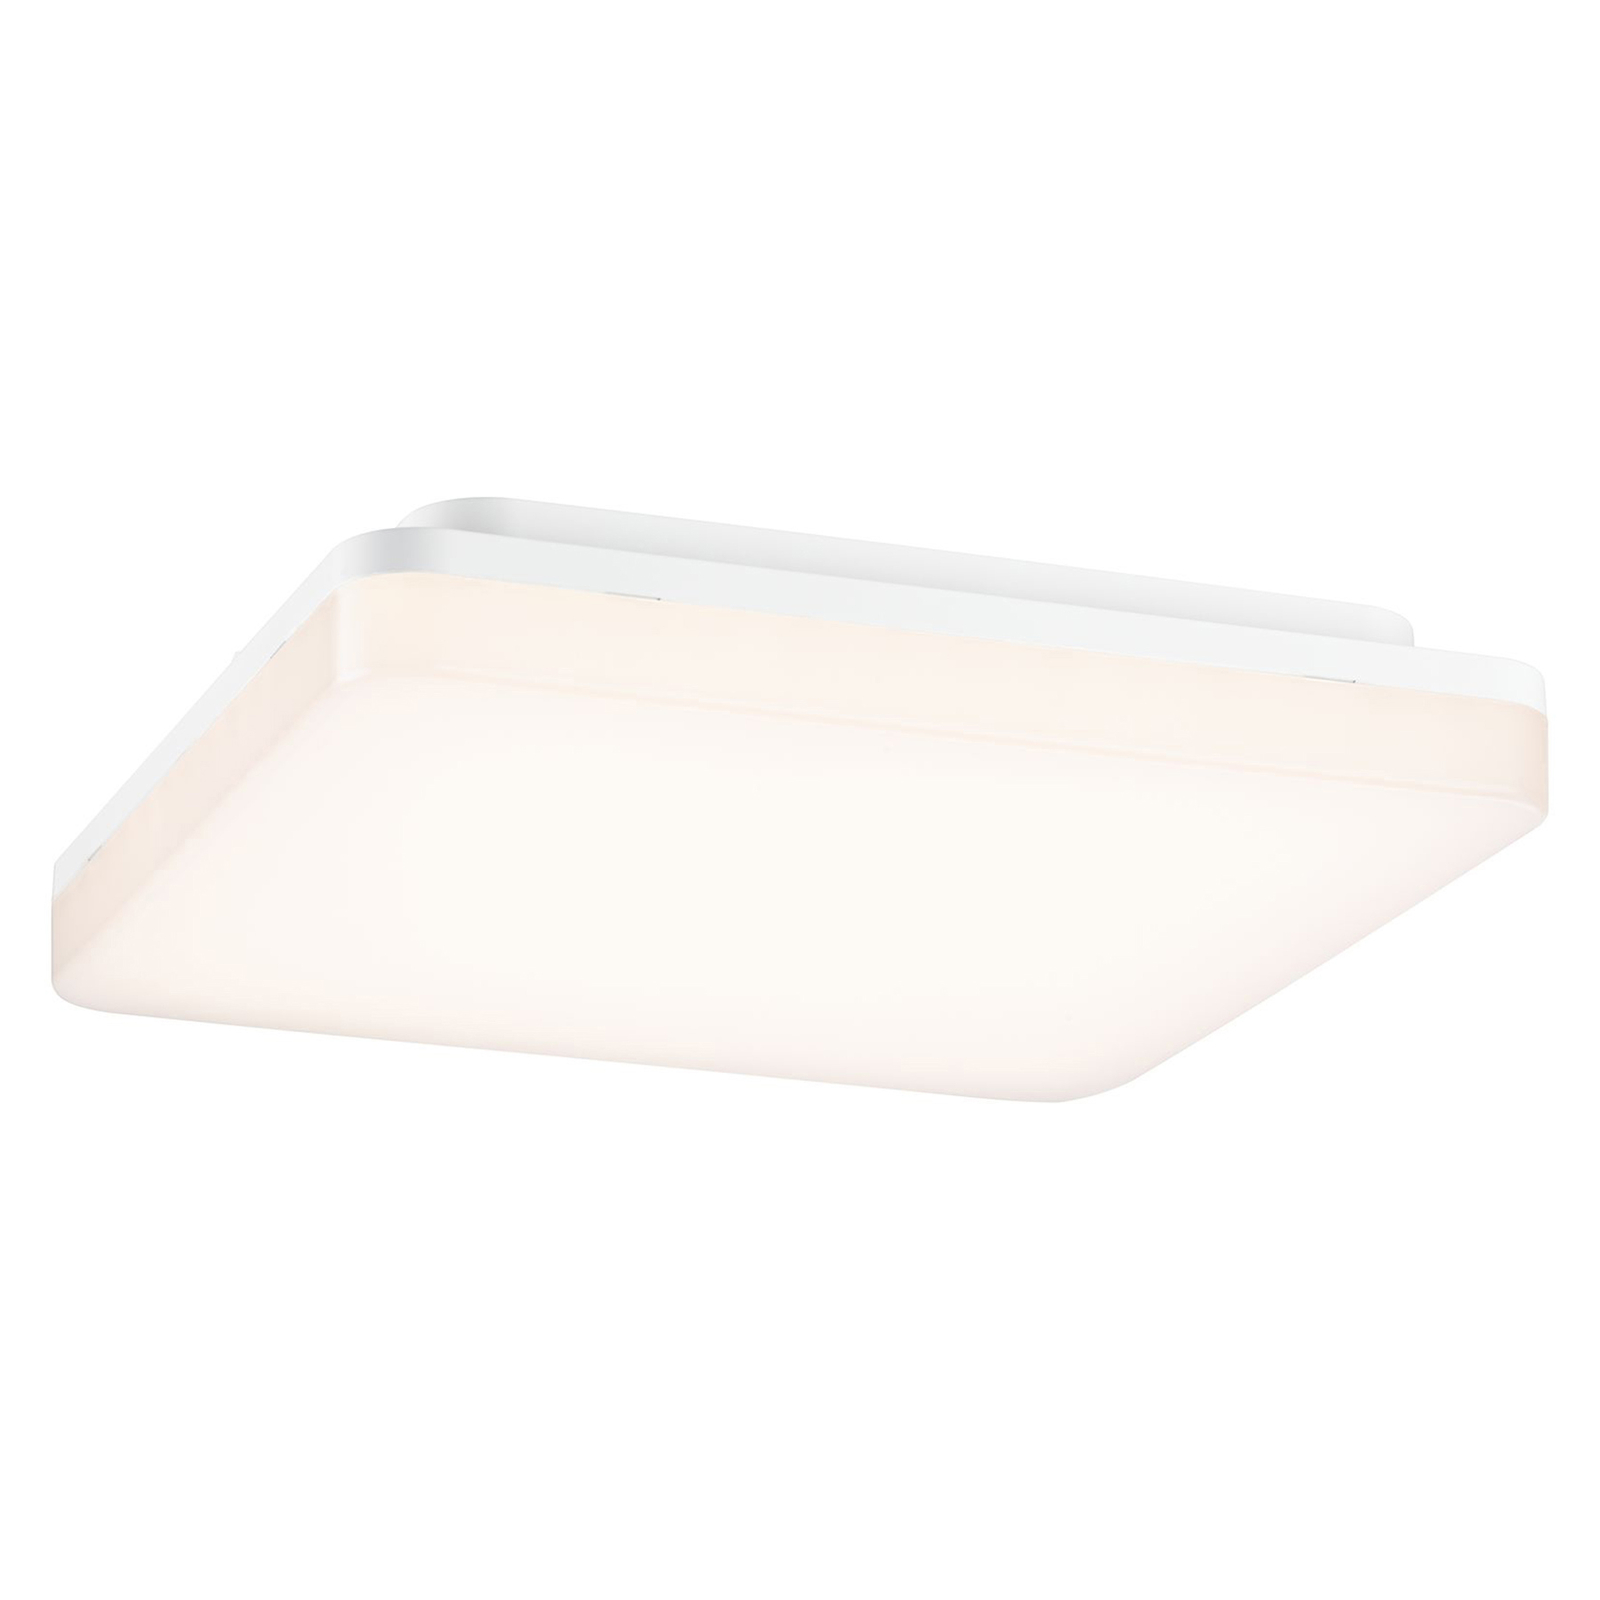 Paulmann Cela panneau LED 28x28 cm, White Switch